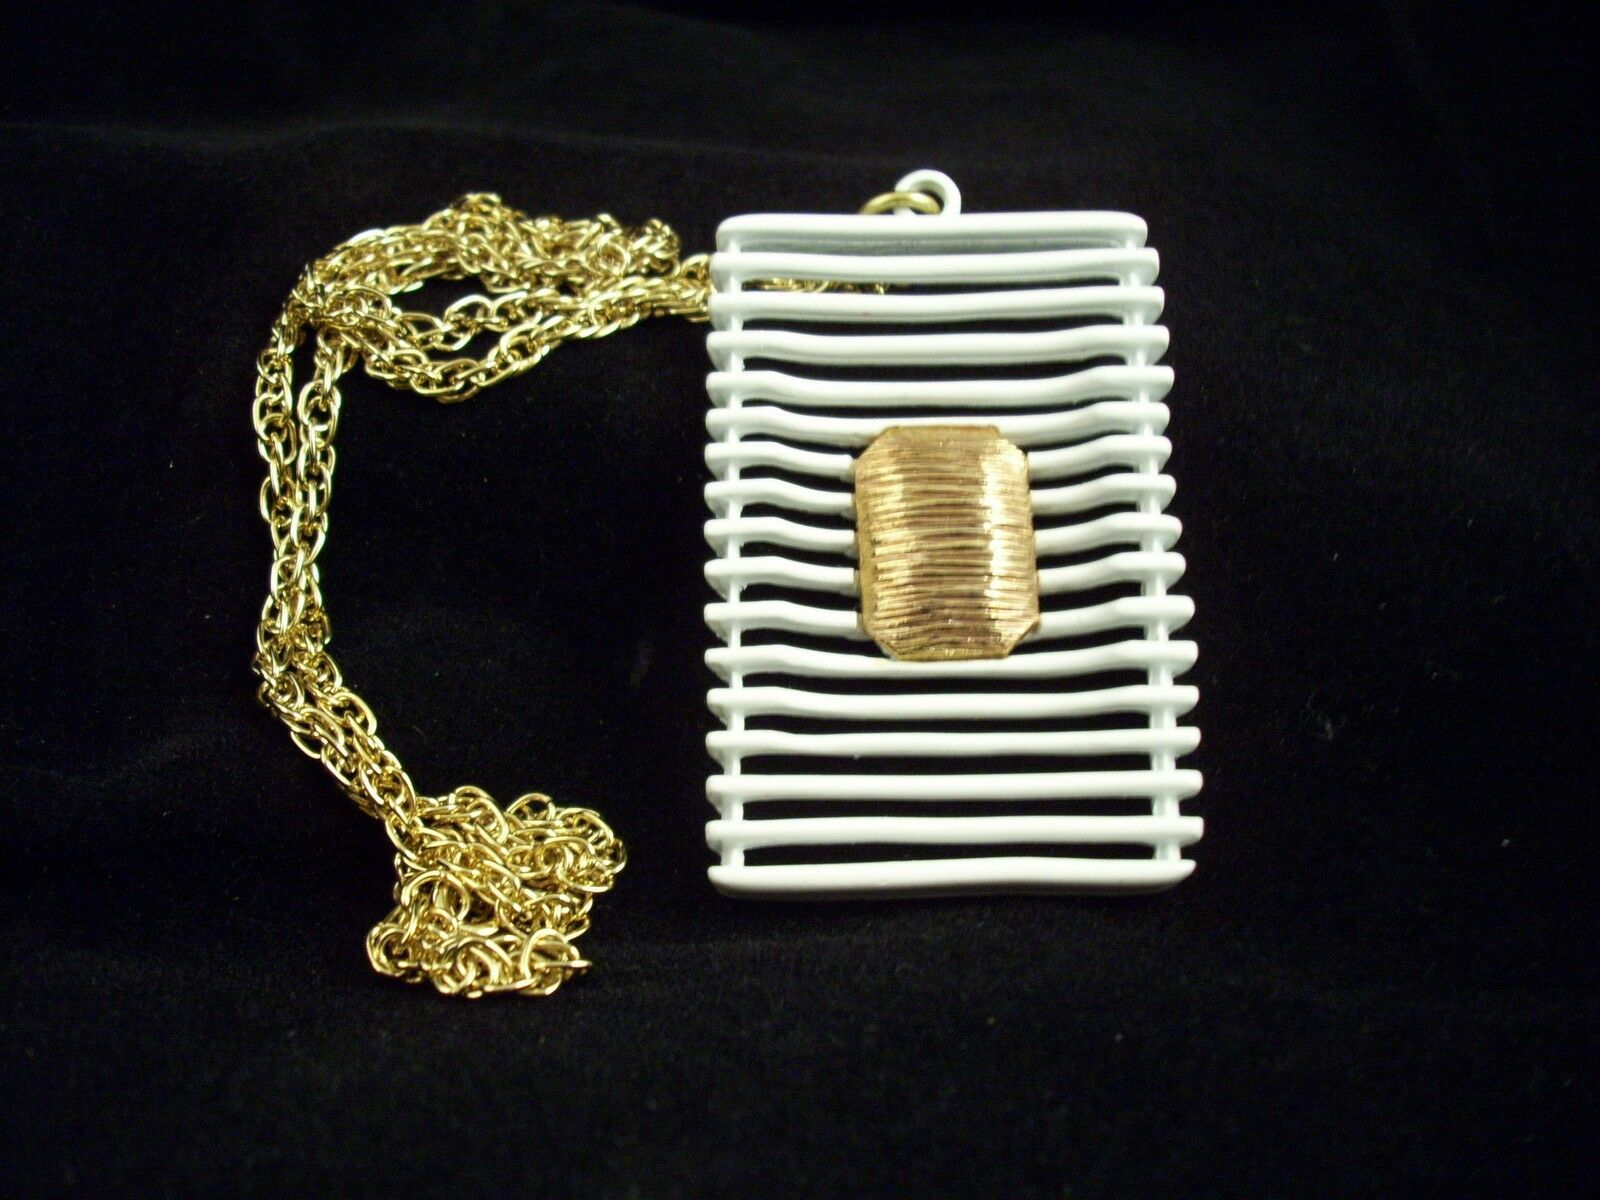 JJ ABSTRACT  WHITE Enamel Pendant Necklace Gold Plate Avant Garde GEOMETRIC image 2